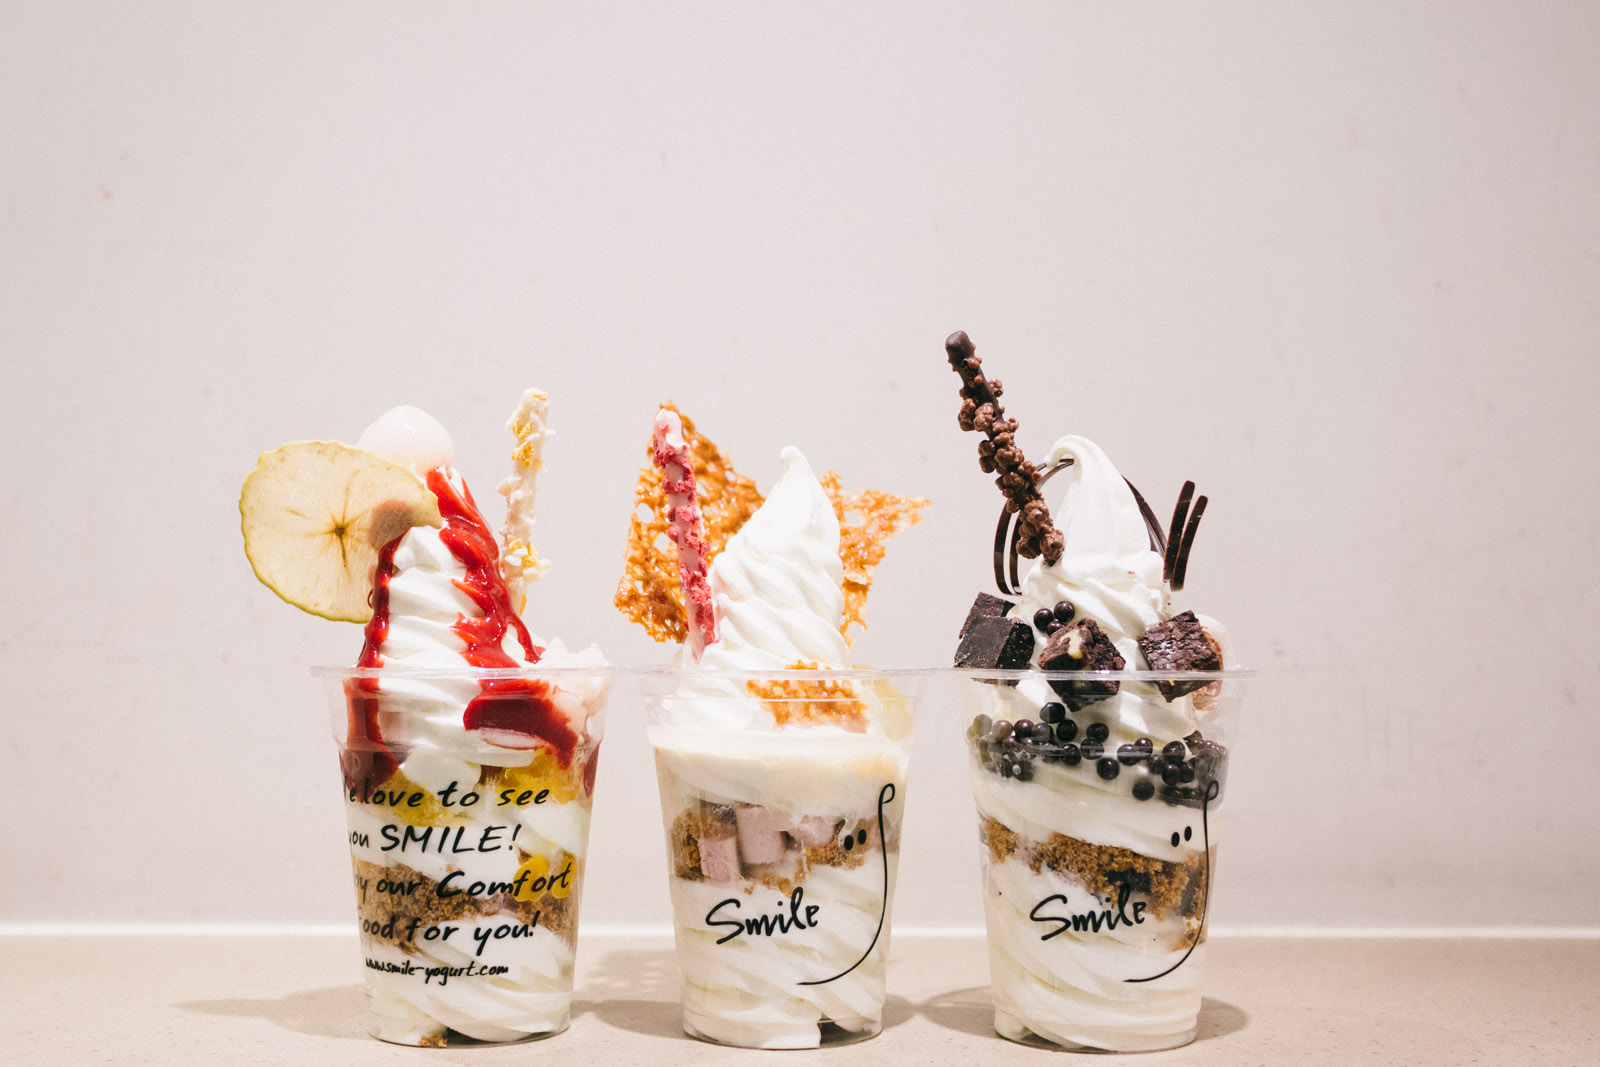 hong-kong-cray-10-local-late-night-dessert-spots-you-need-to-know-about-16